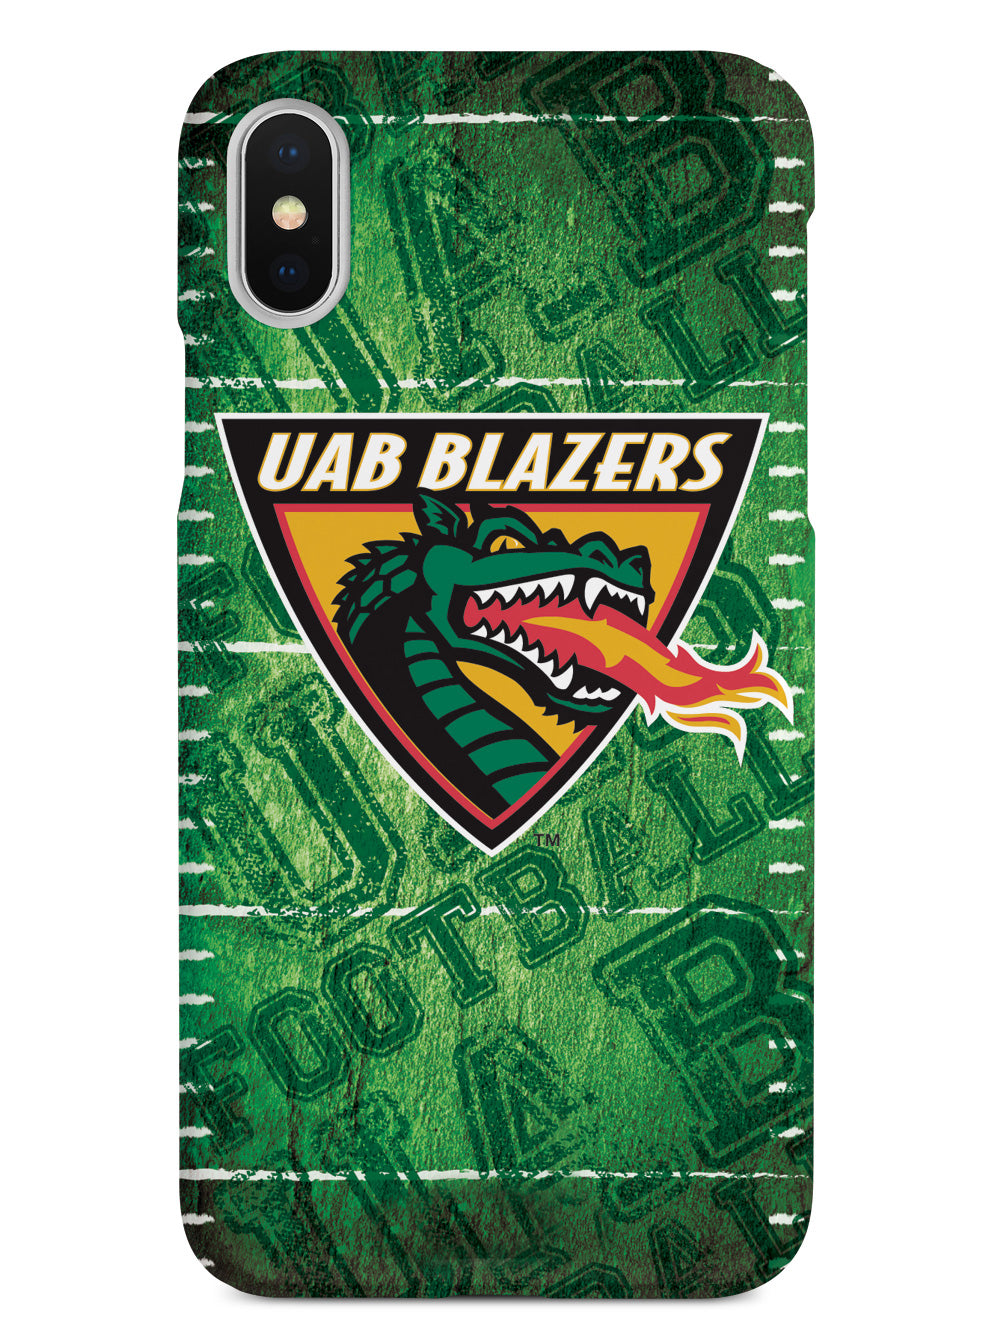 UAB Blazers - Football Case